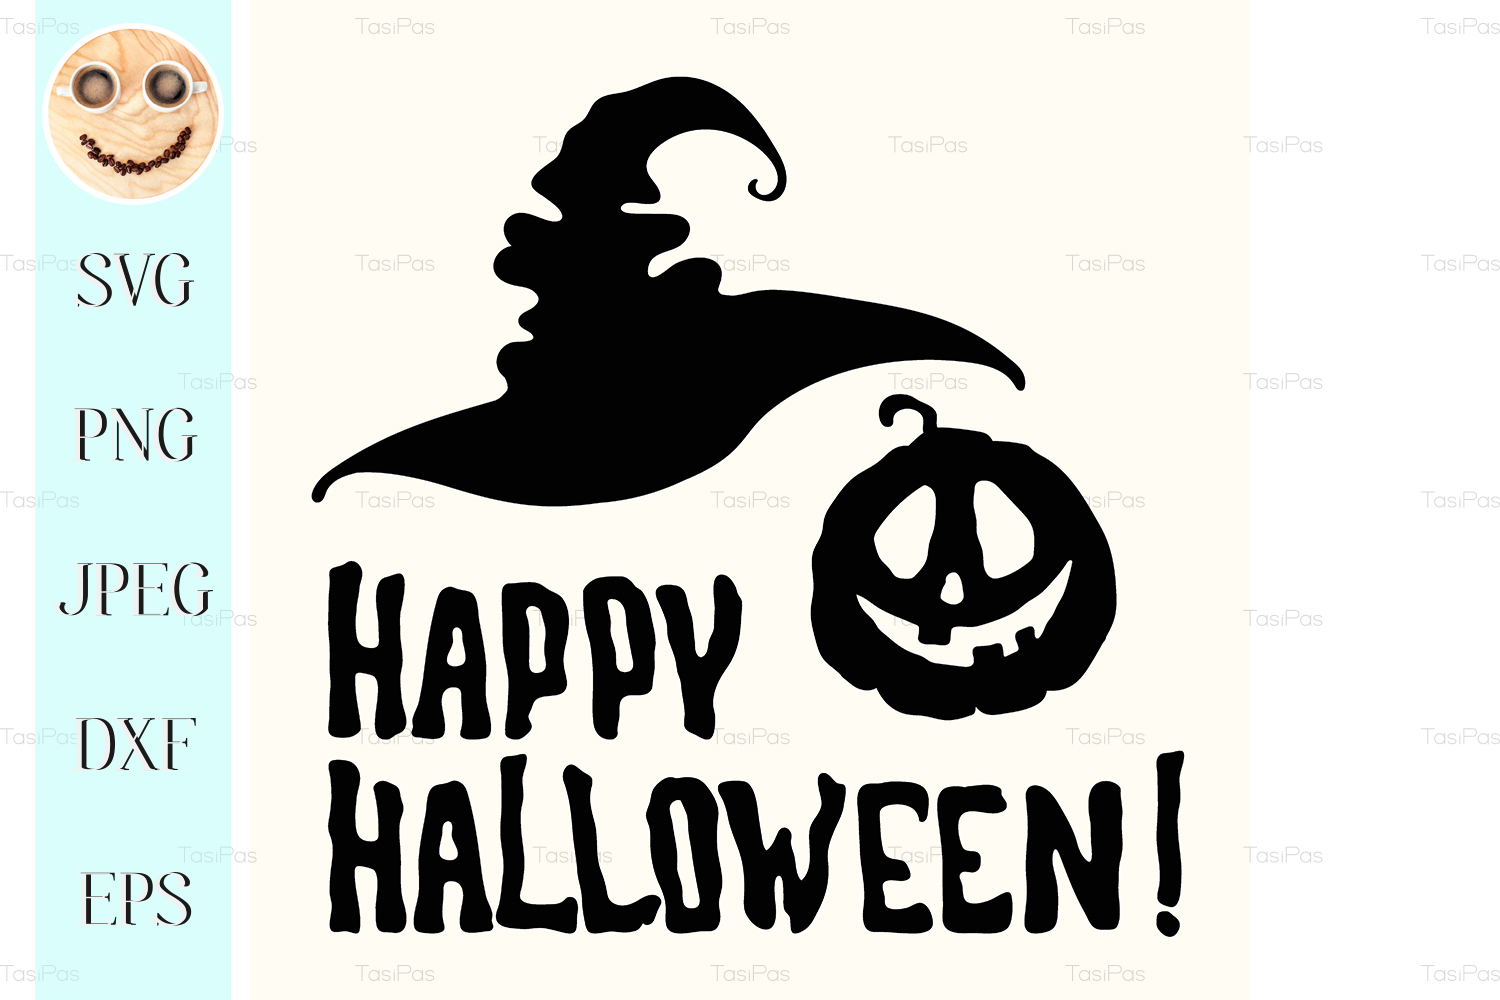 Happy Halloween Title With Face Pumpkin Graphic By Tasipas Creative Fabrica